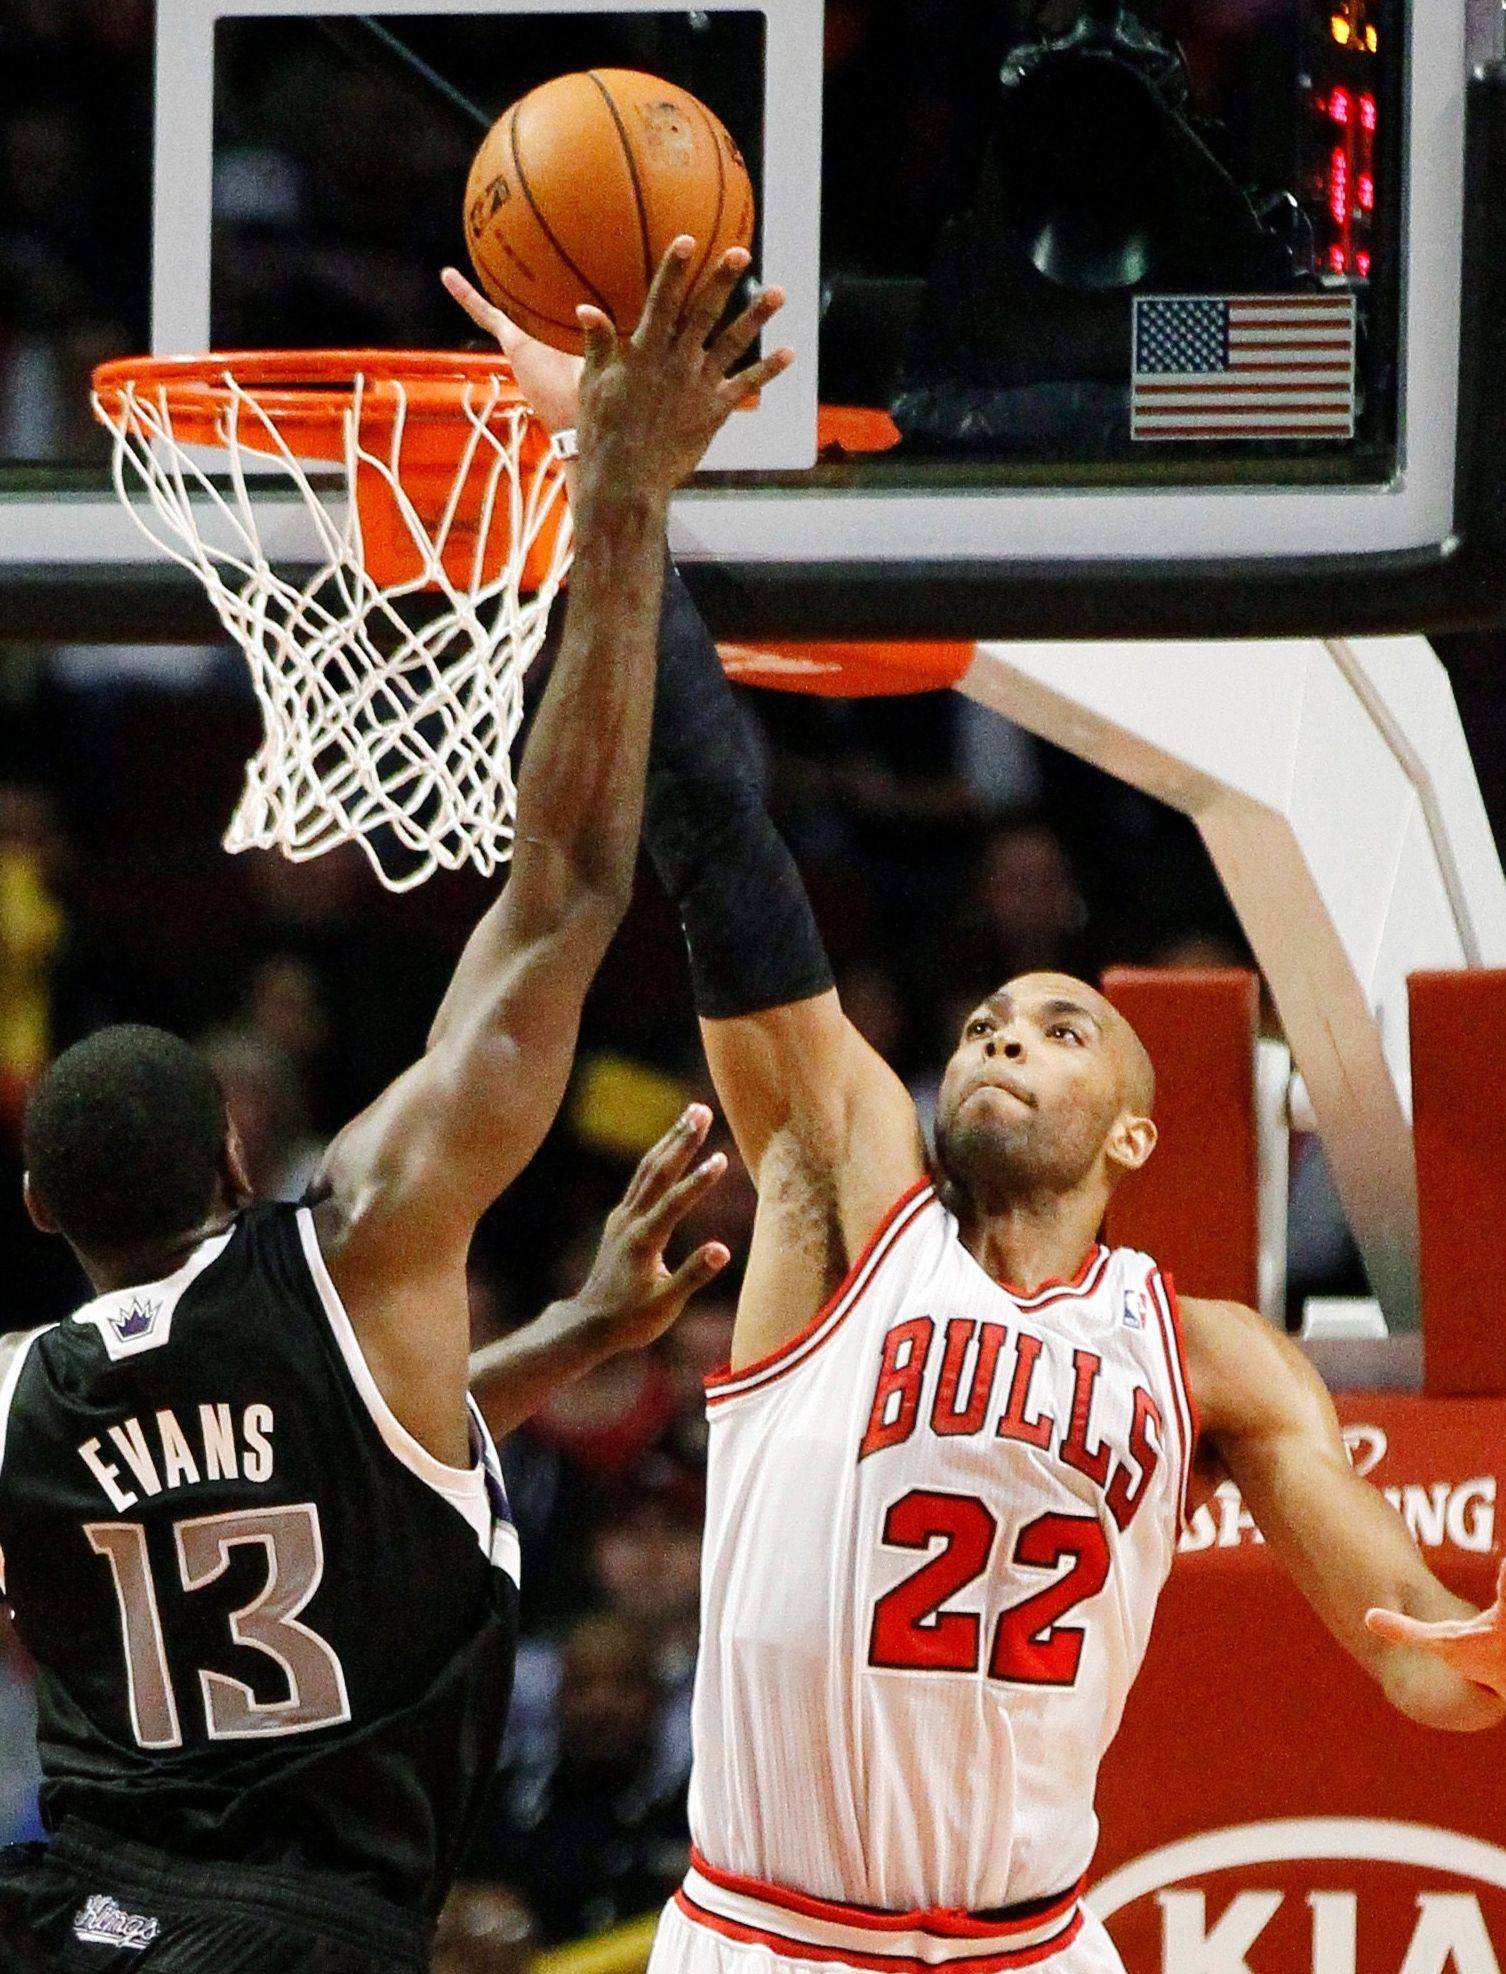 The Bulls' Taj Gibson, here challenging a shot by the Kings' Tyreke Evans on Wednesday, signed a four-year contract extension worth a reported $38 million with incentives.